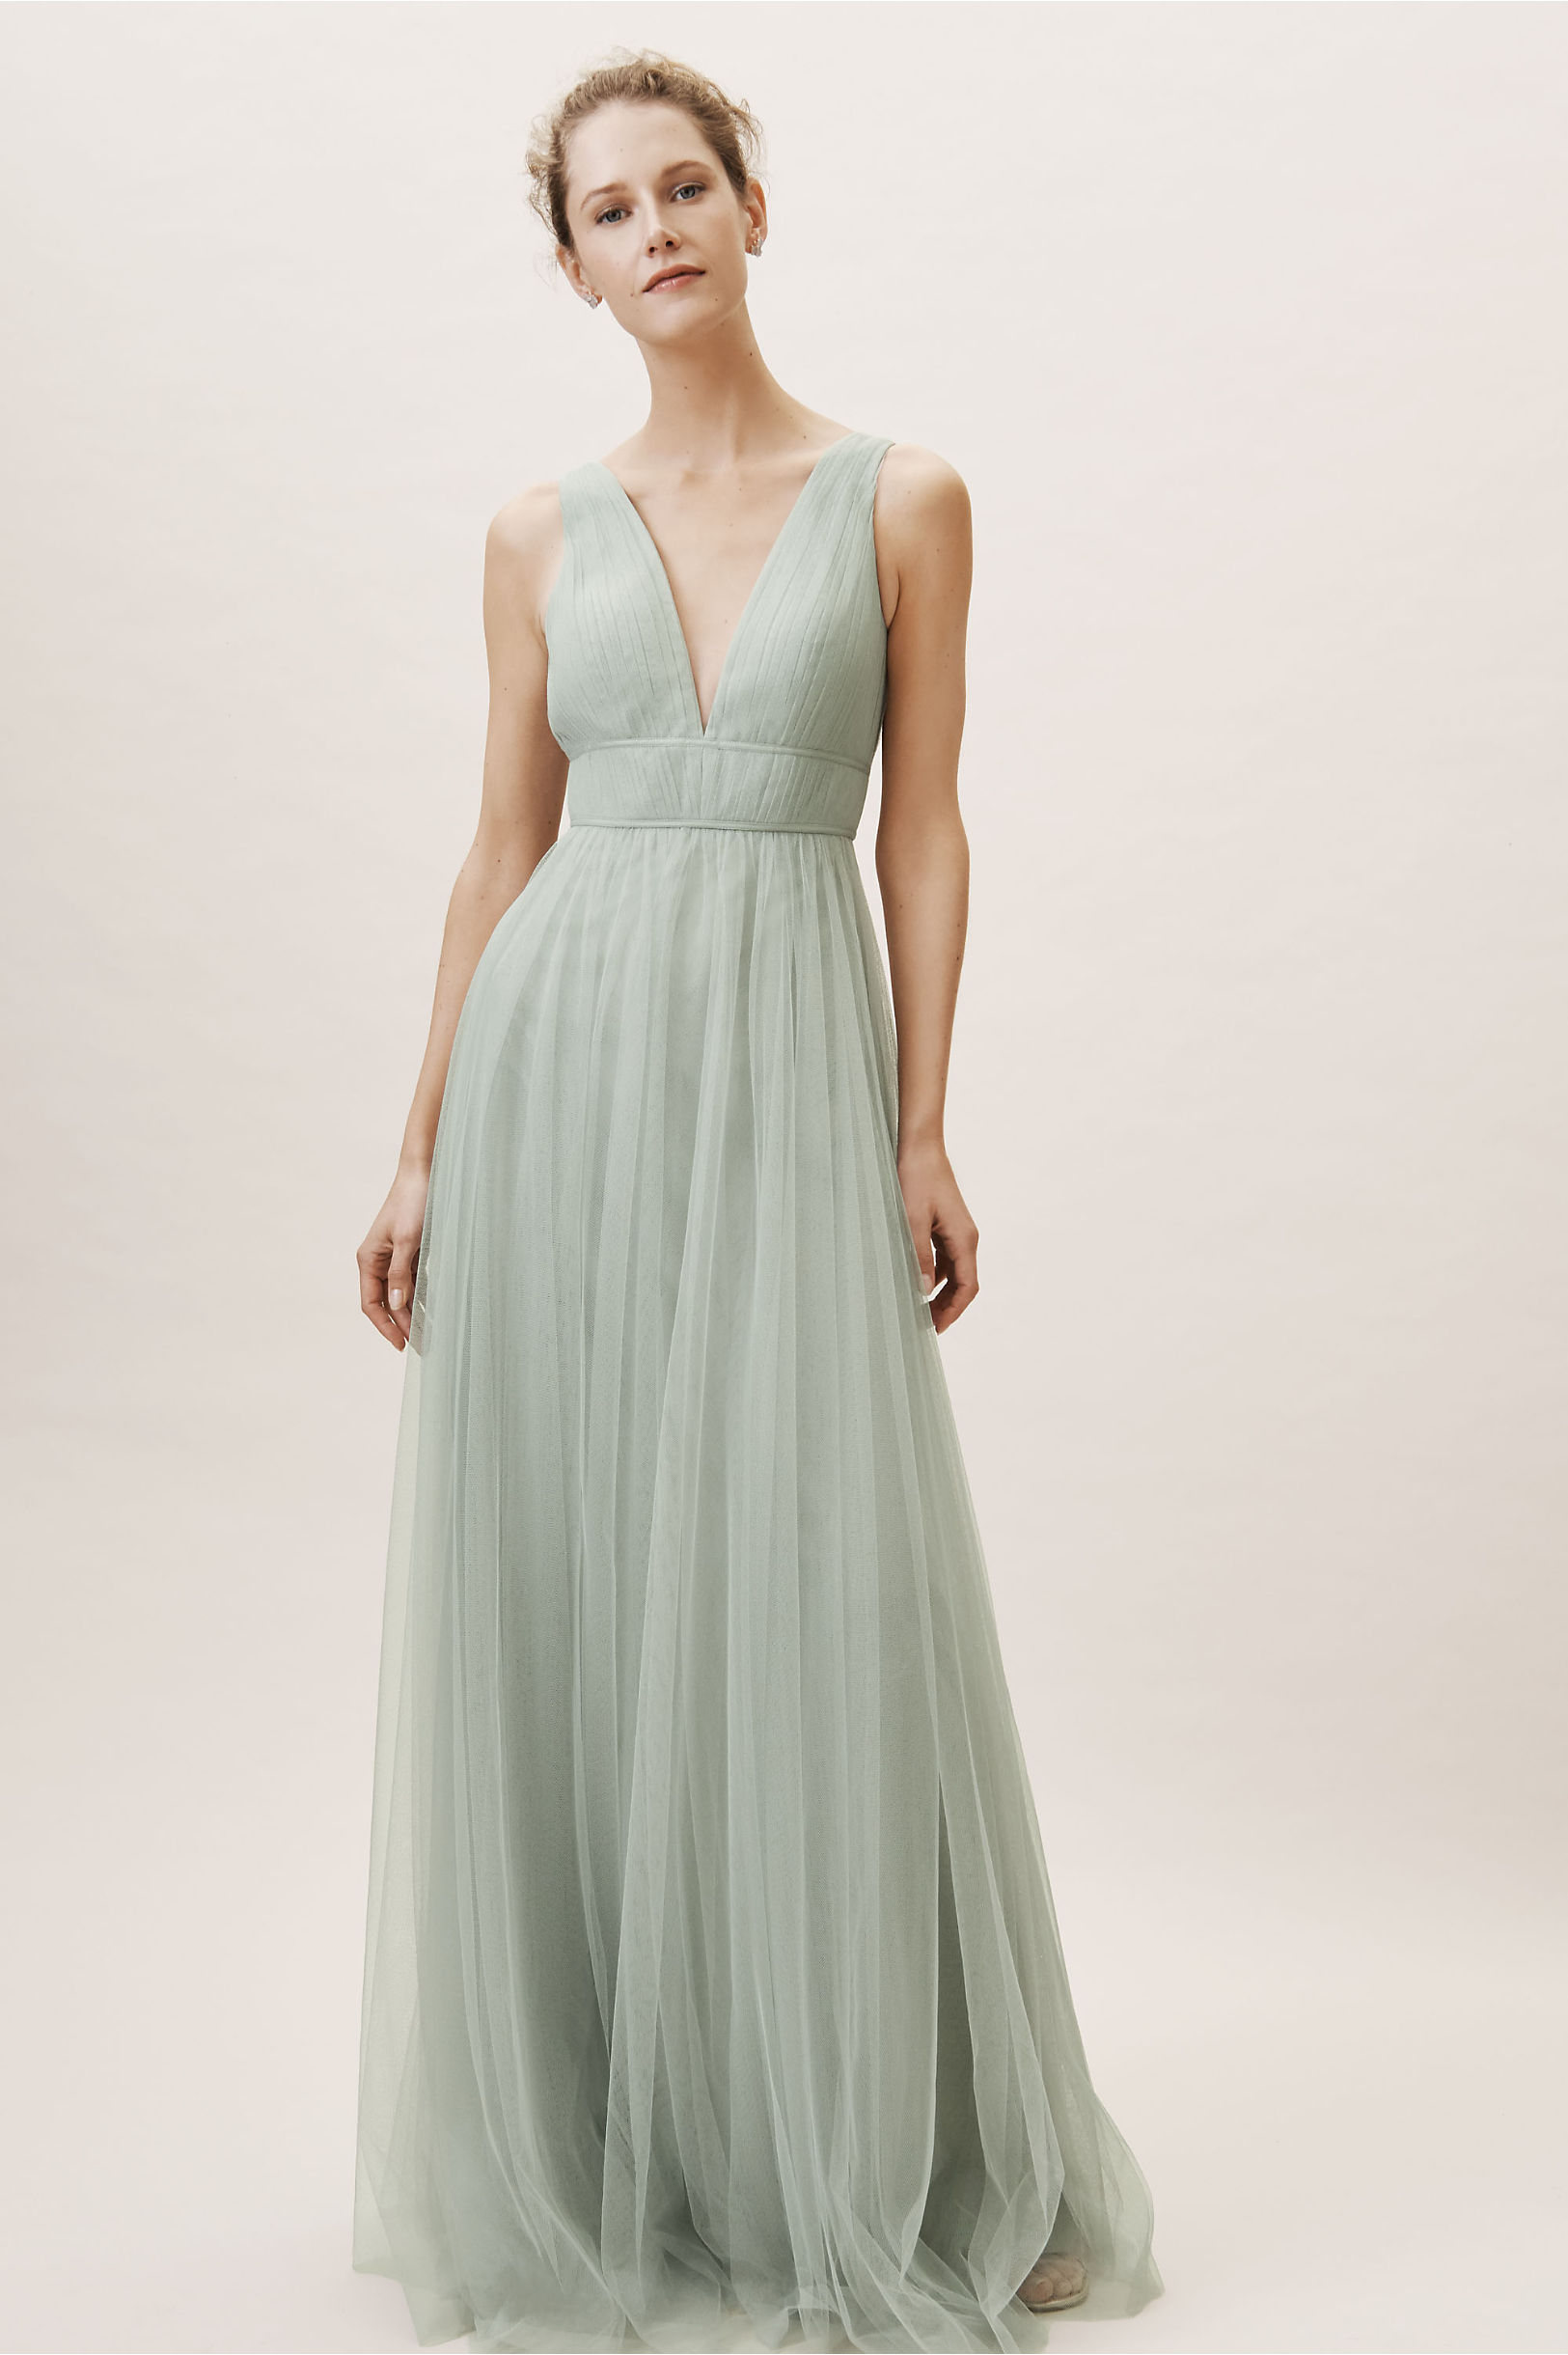 107c0d72d33 Sarita Dress Morning Mist in Bridesmaids   Bridal Party